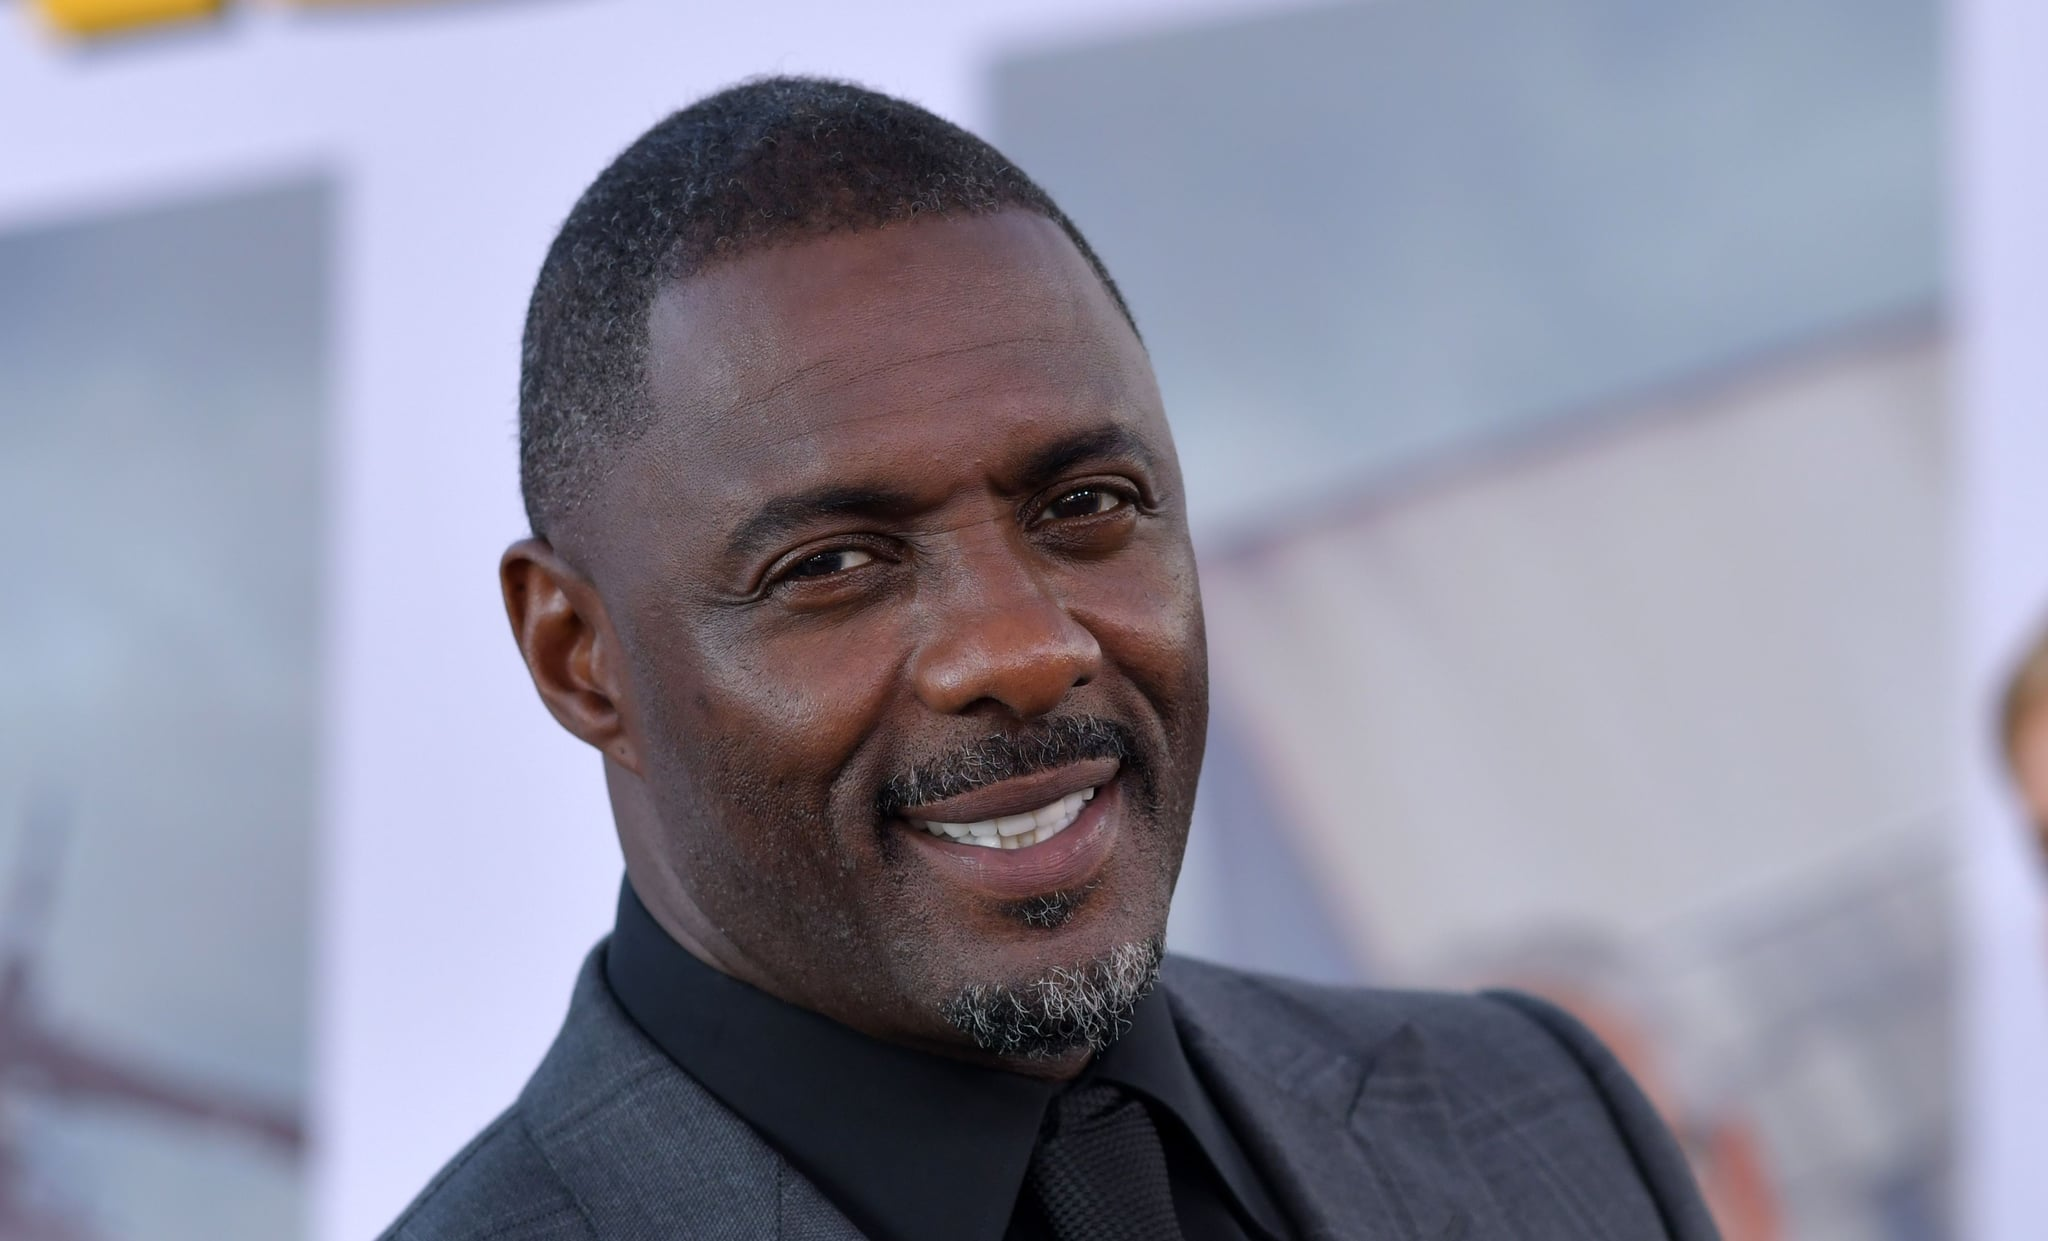 English actor Idris Elba attends the world premiere of